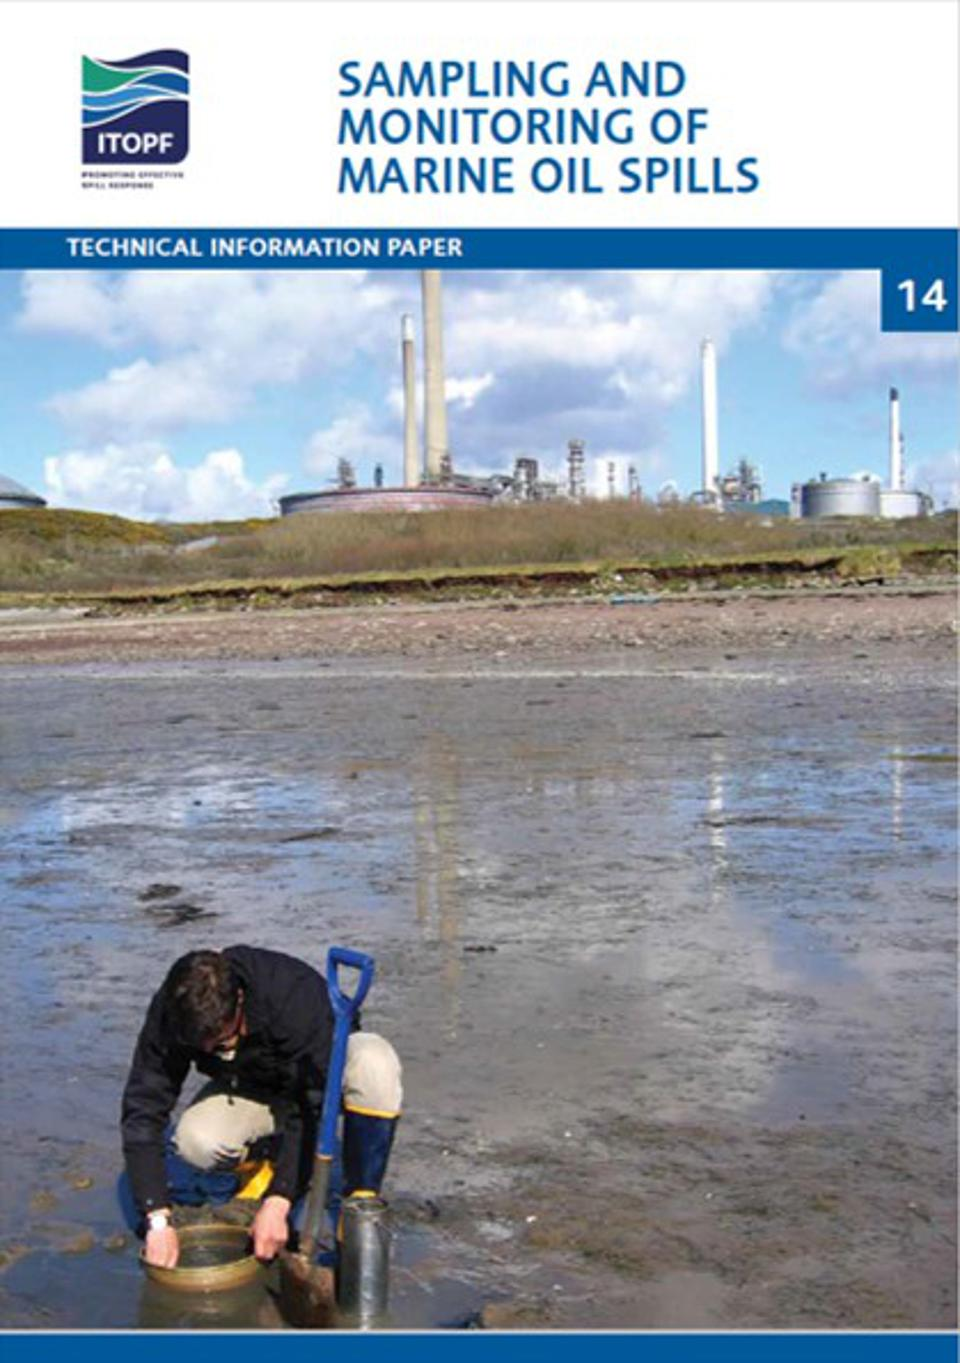 There is a 16 page technical information page on the ITOPF website (TIP14) that gives a step by step guide on how to sample and fingerprint oil.  With two representatives in Mauritius, what happened to the fingerprinting?